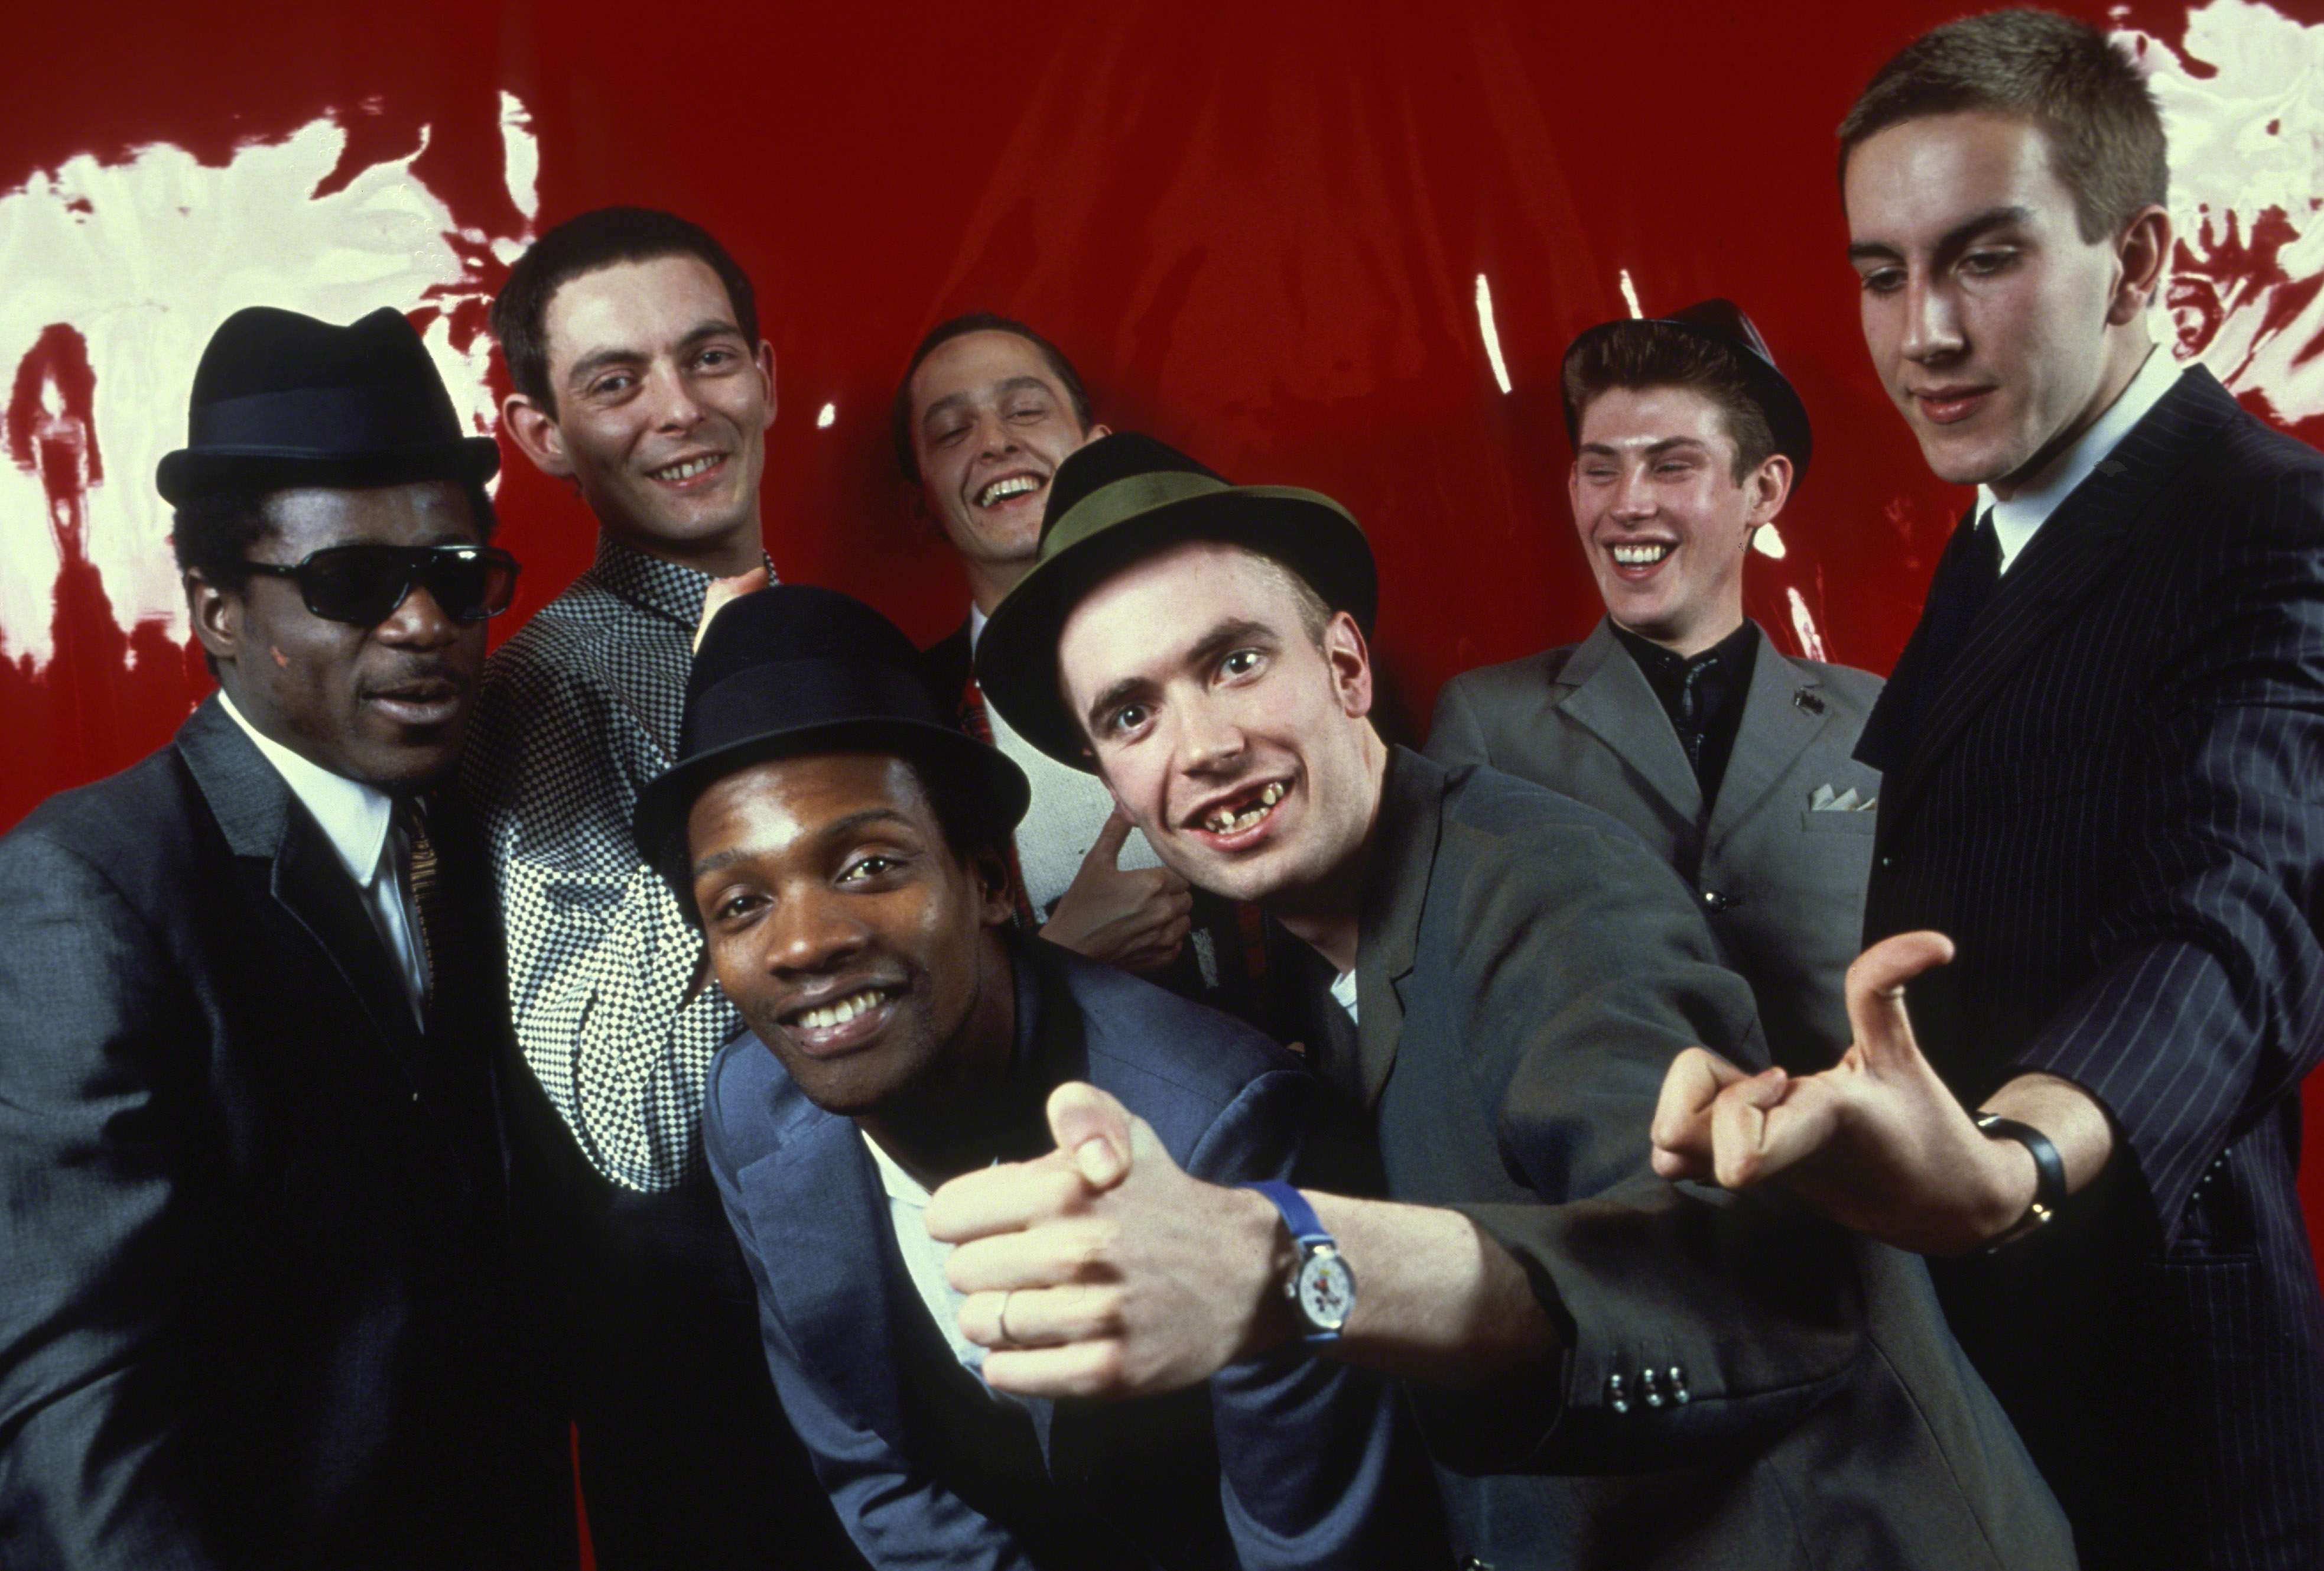 The Specials in New York City